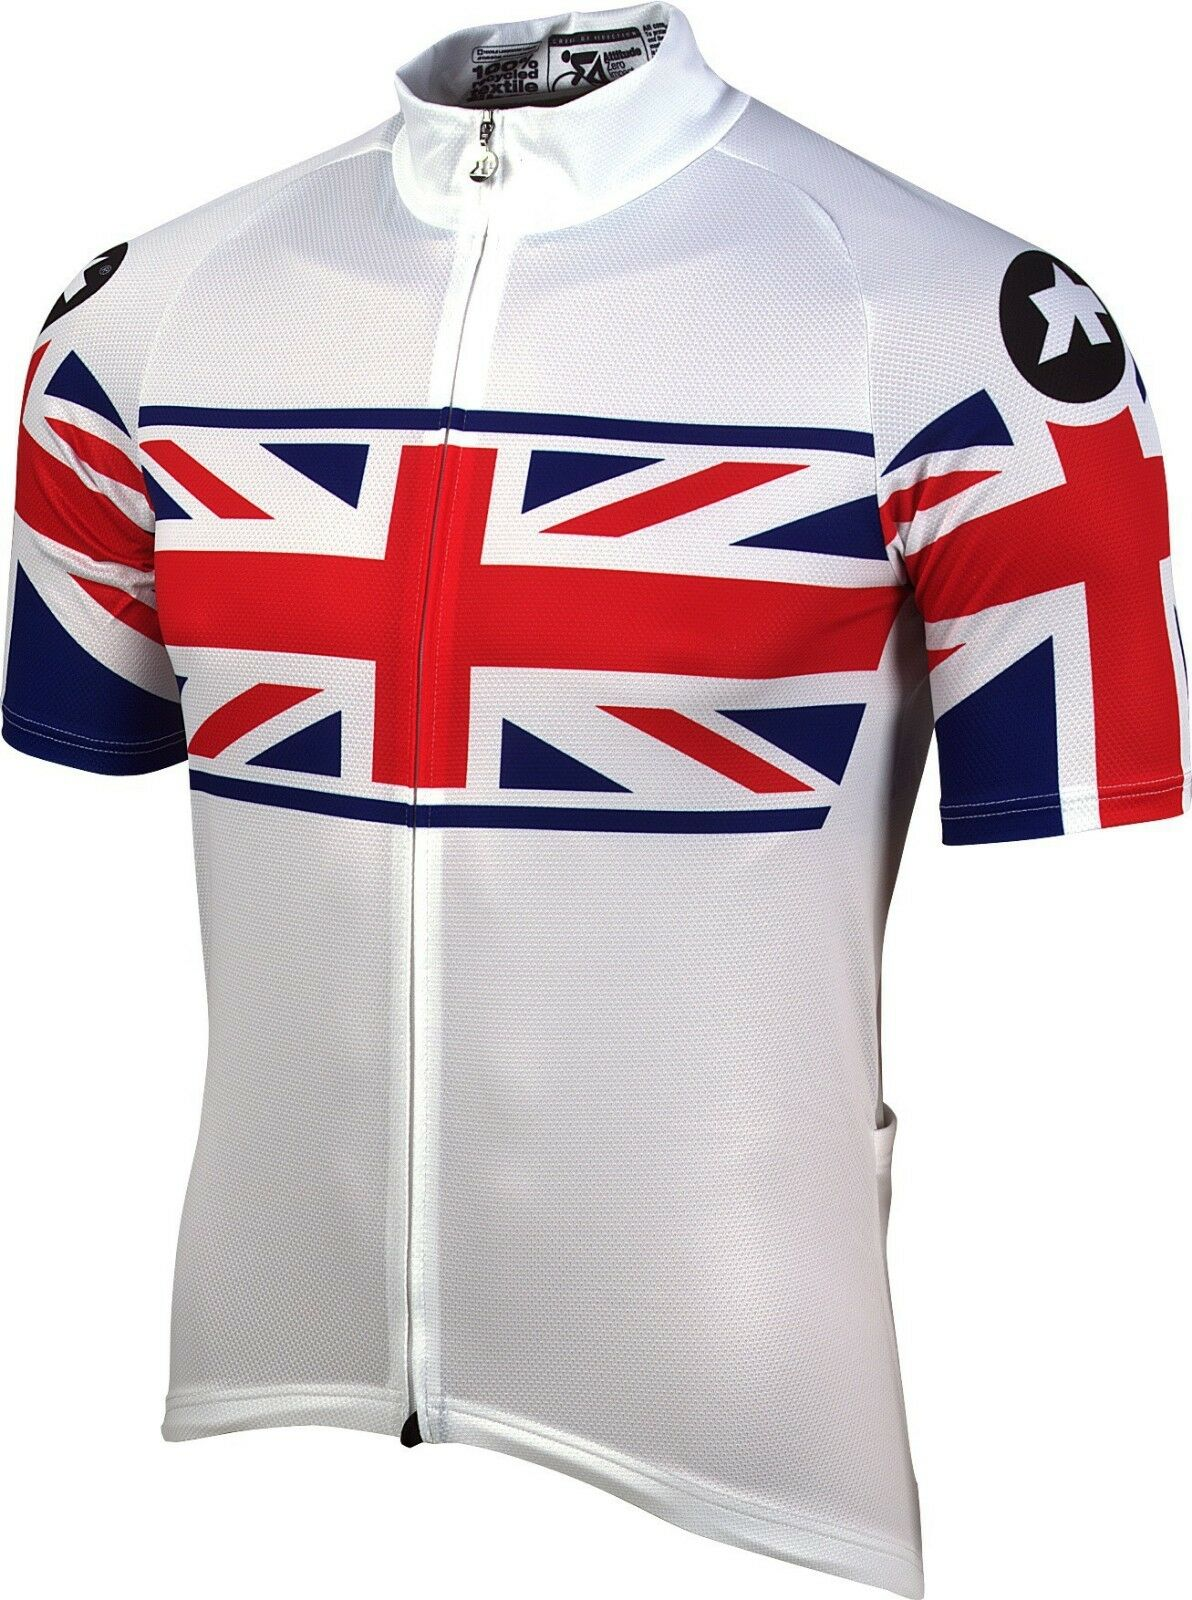 Assos SS.neoPro United Kingdom Jersey Size Small